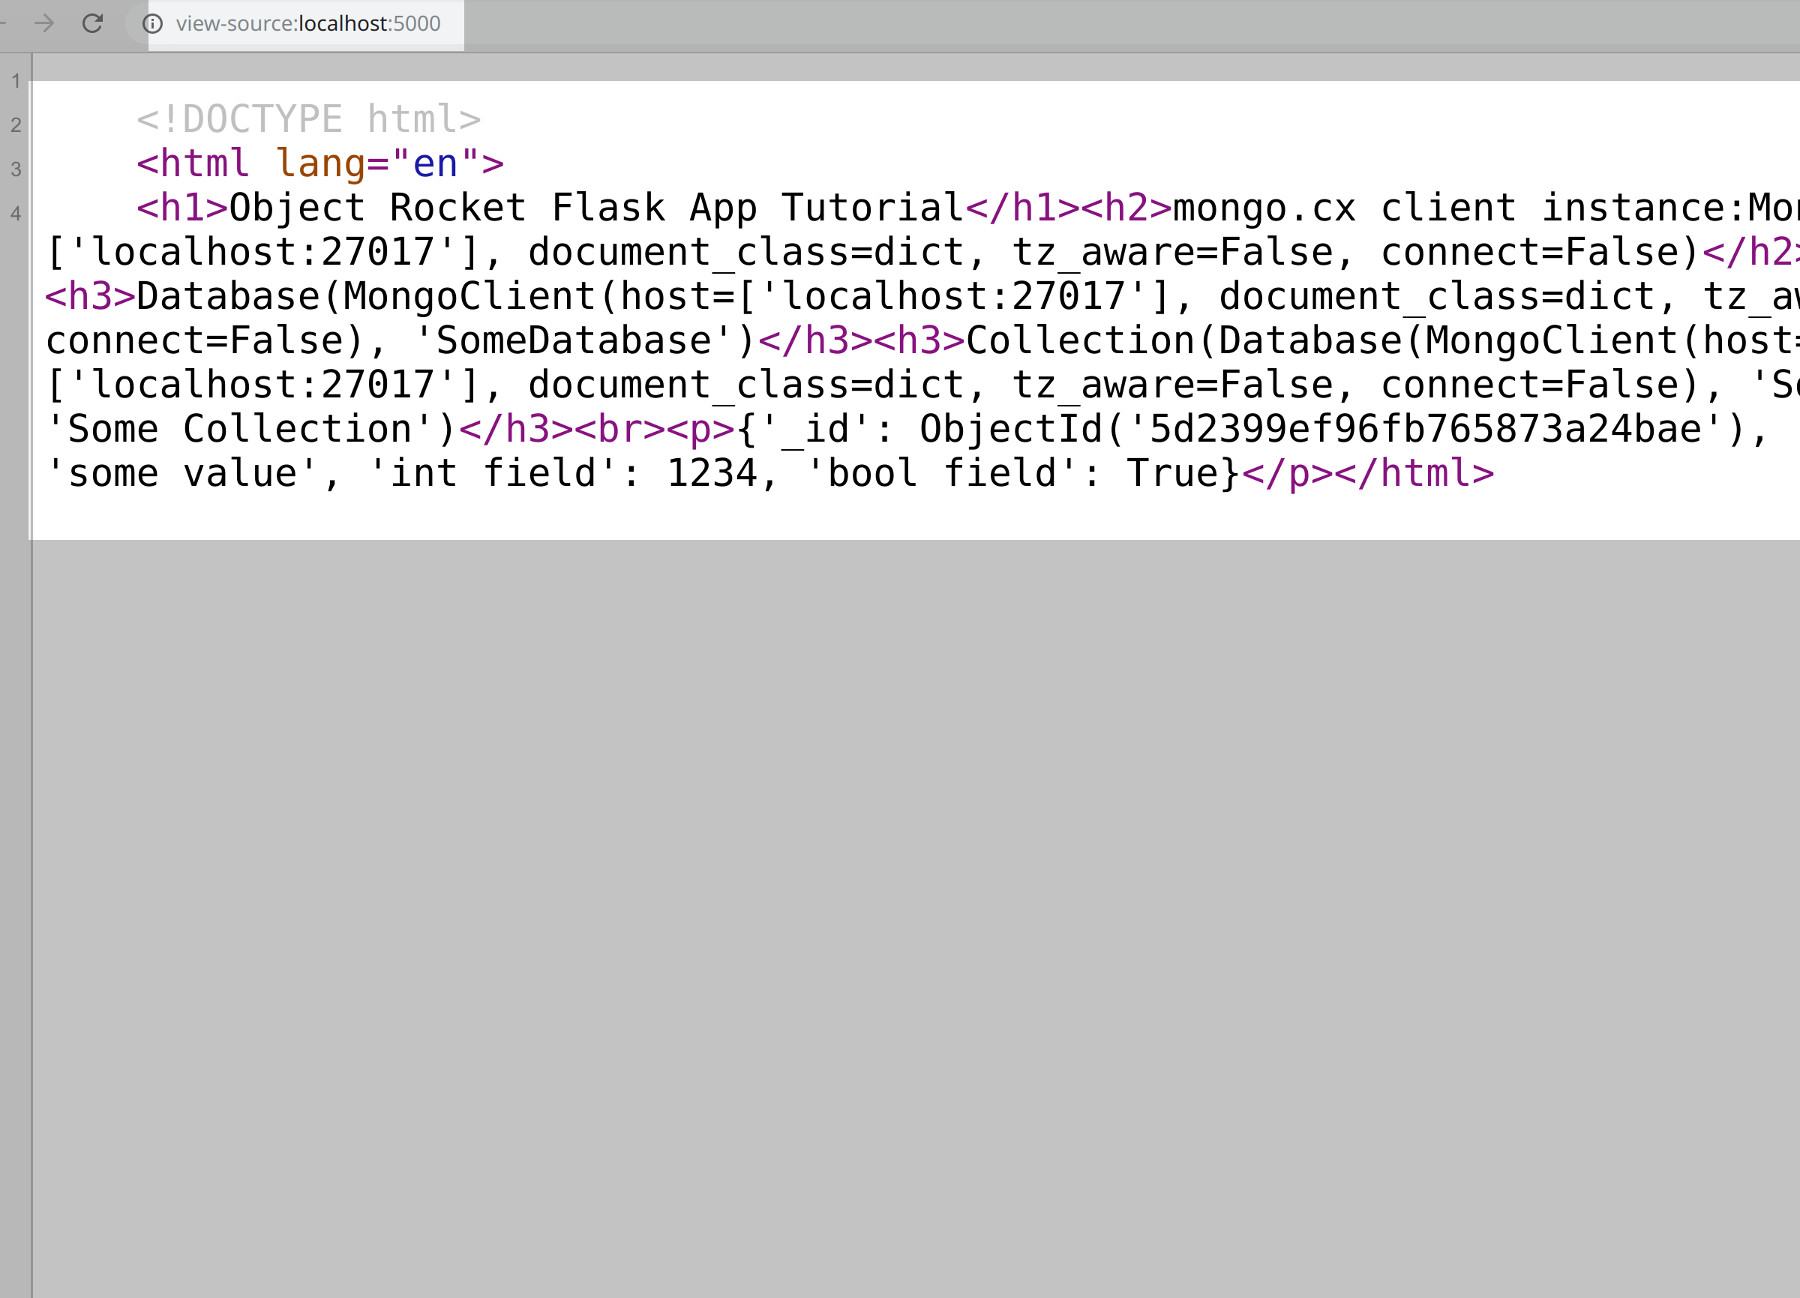 Screenshot of the Flask web application's HTML page source of MongoDB data